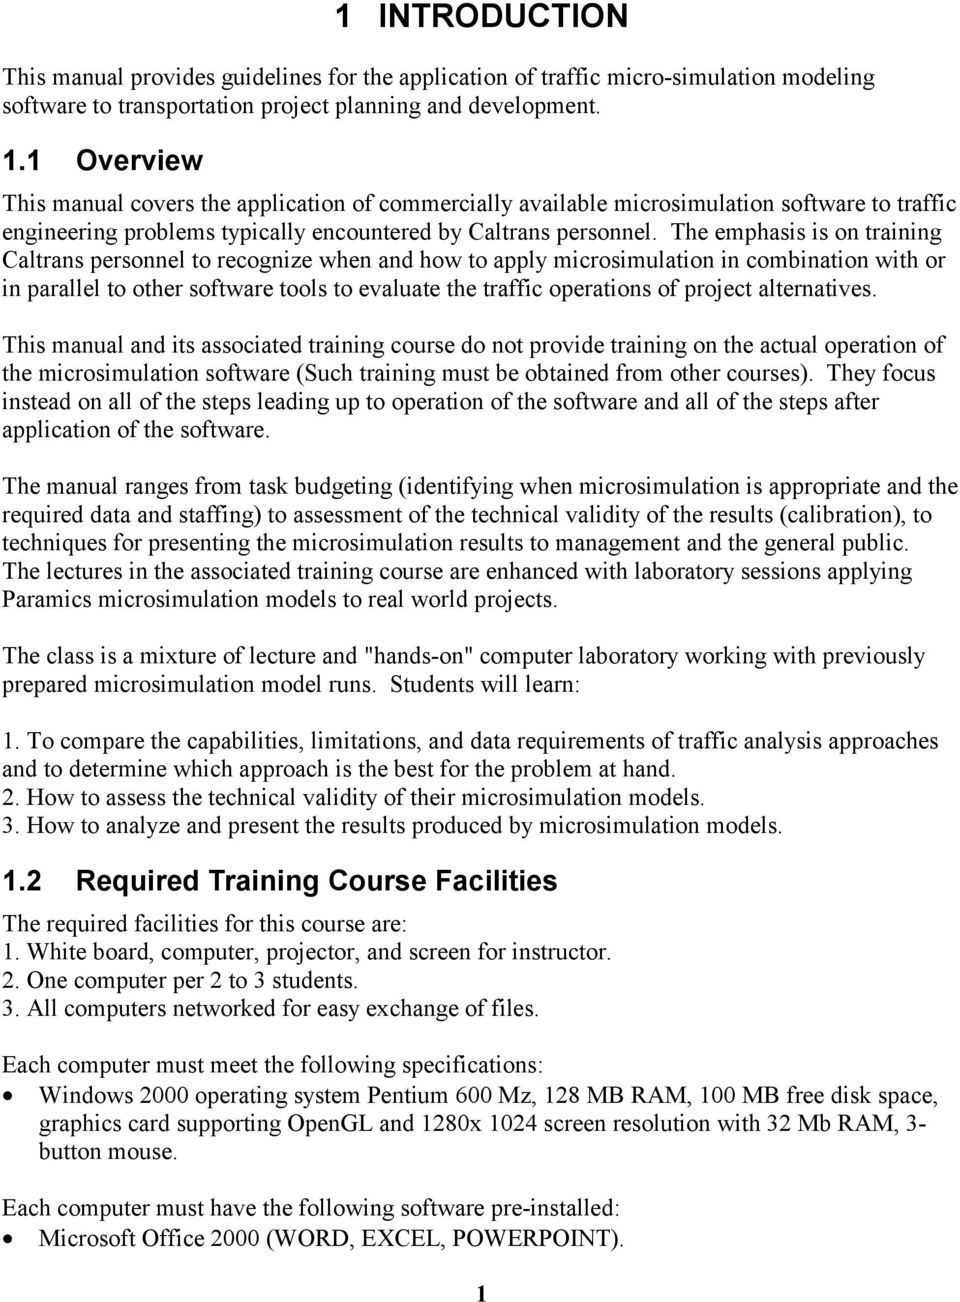 California Department of Transportation  Guidelines for